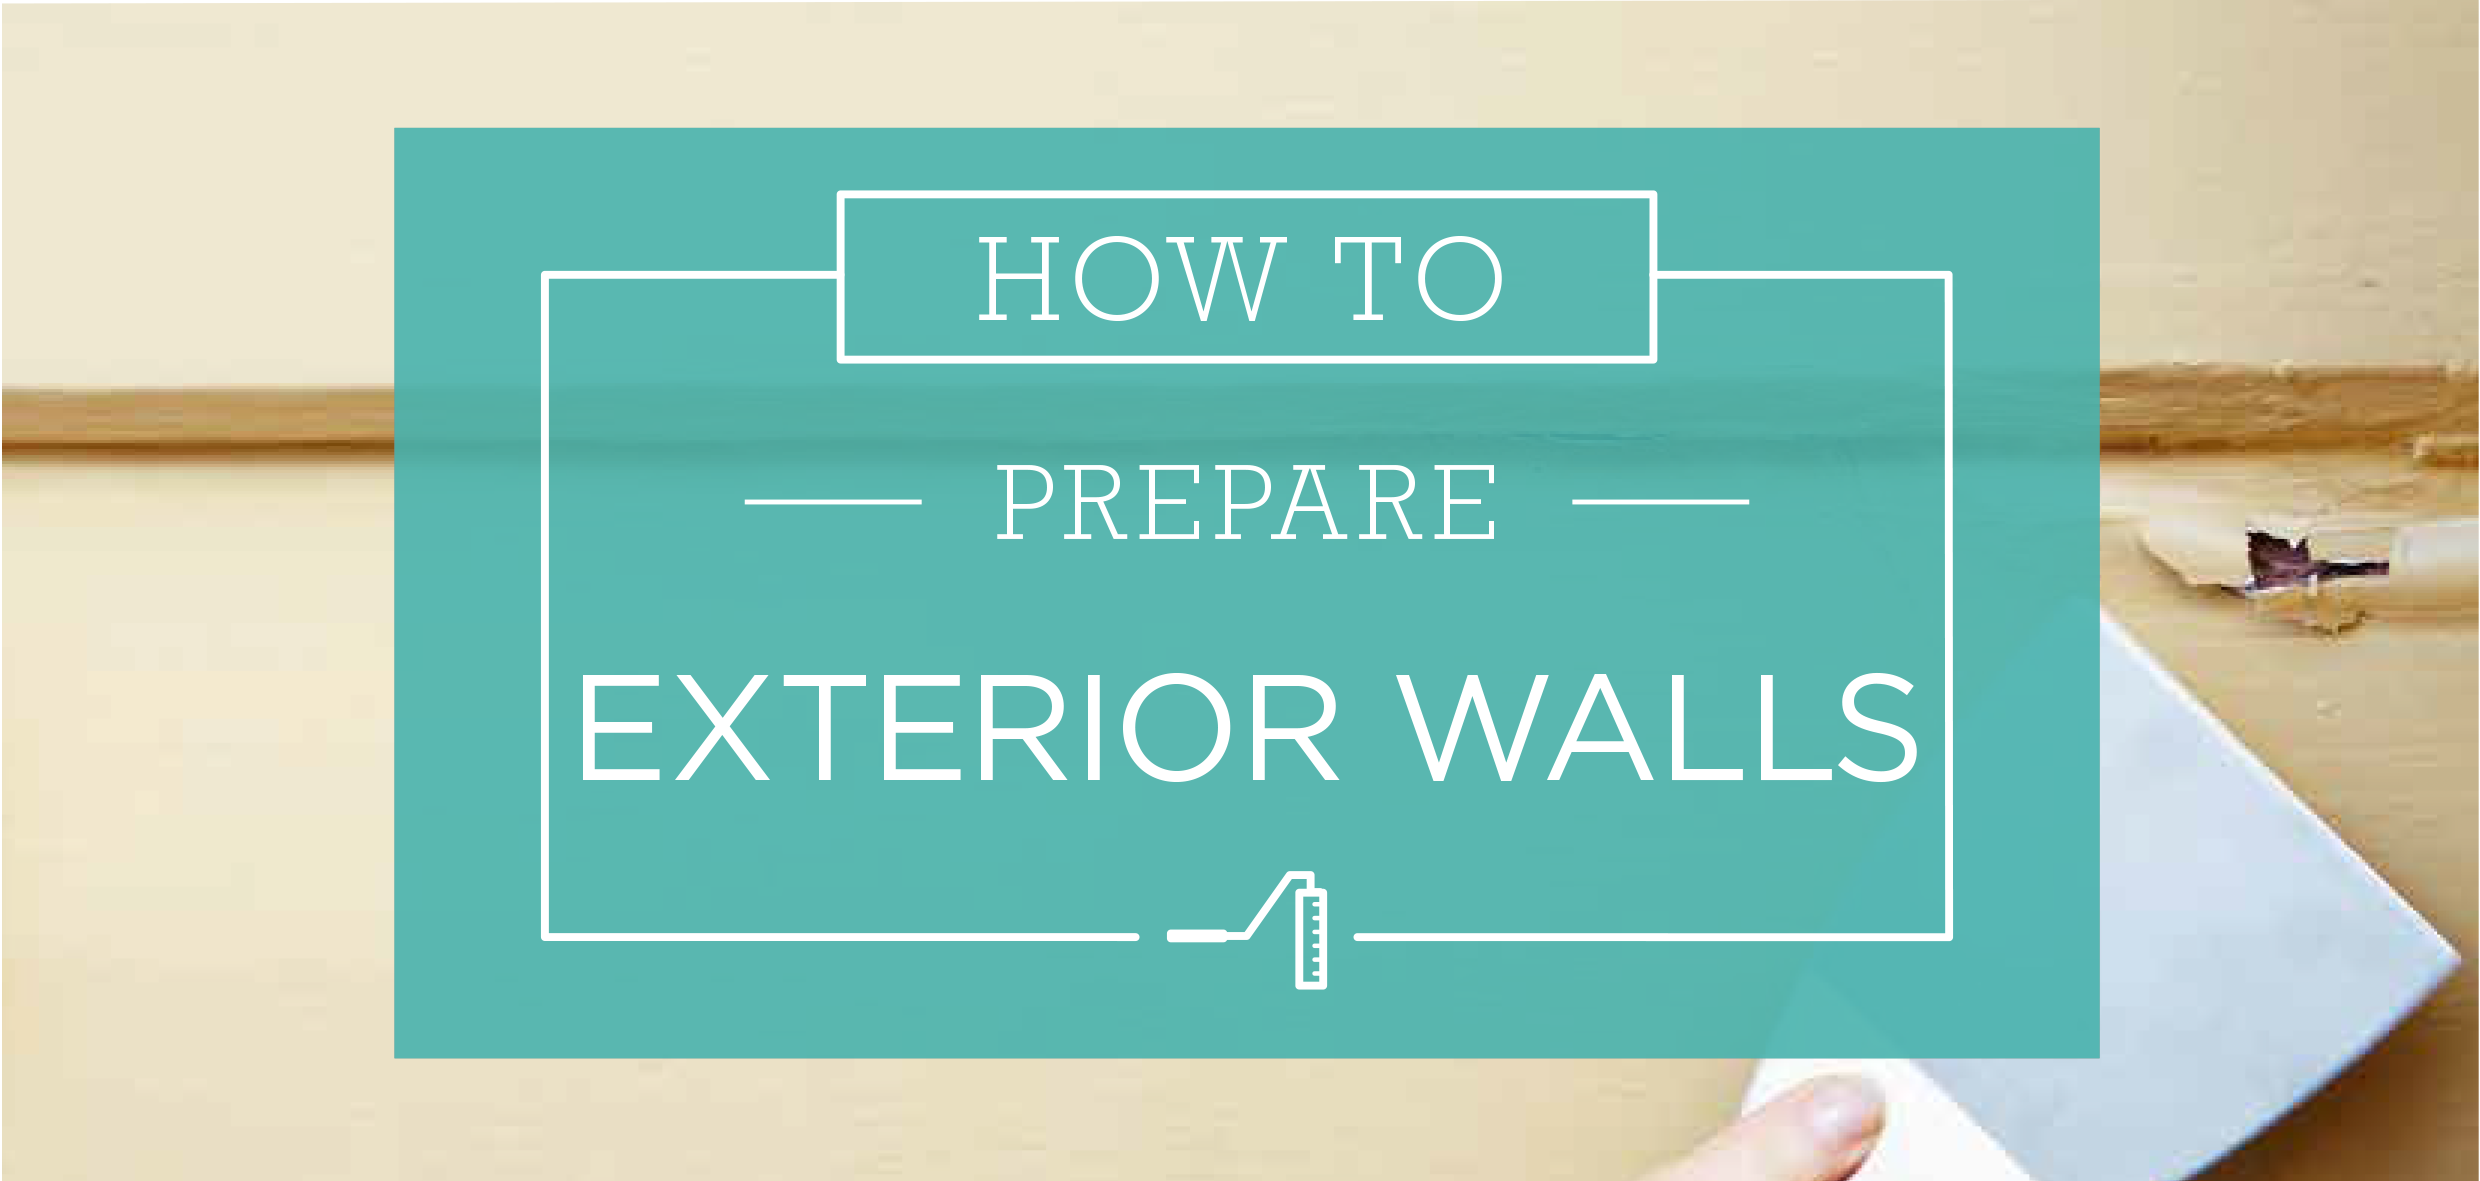 How to Prepare Exterior Walls